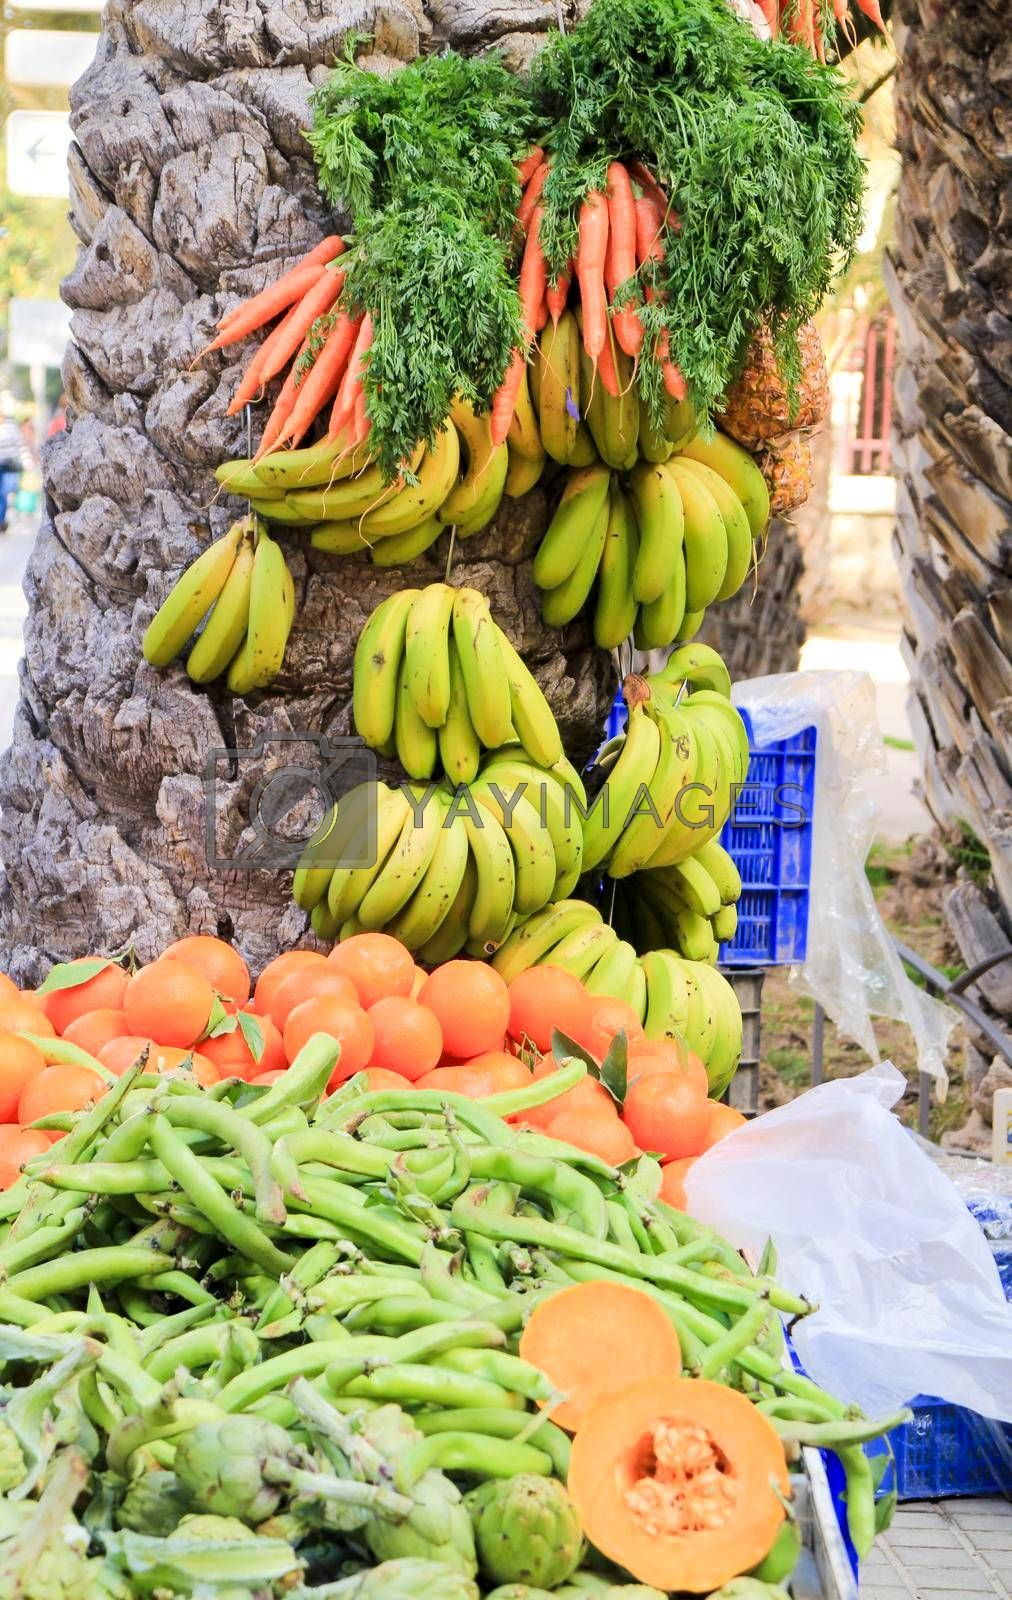 Vegetables and fruits for sale at an ecological market stall in Elche, Alicante, Spain.